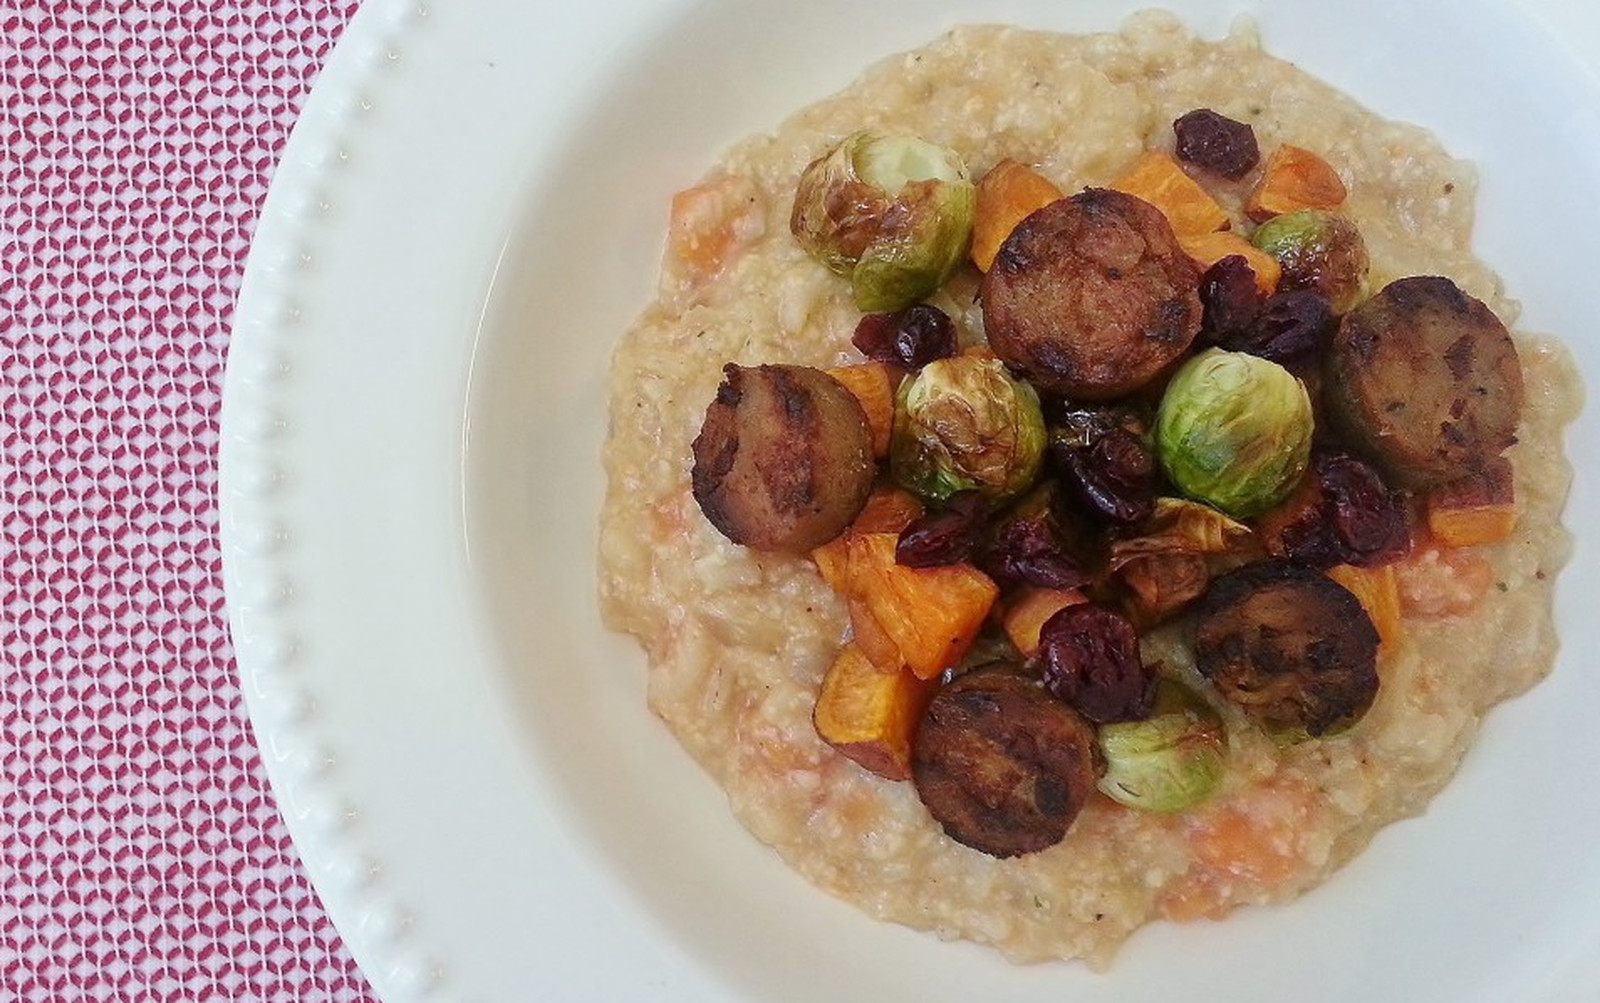 Sweet Potato Risotto With Sausage, Brussels Sprouts, and Cranberries [Vegan, Gluten-Free]